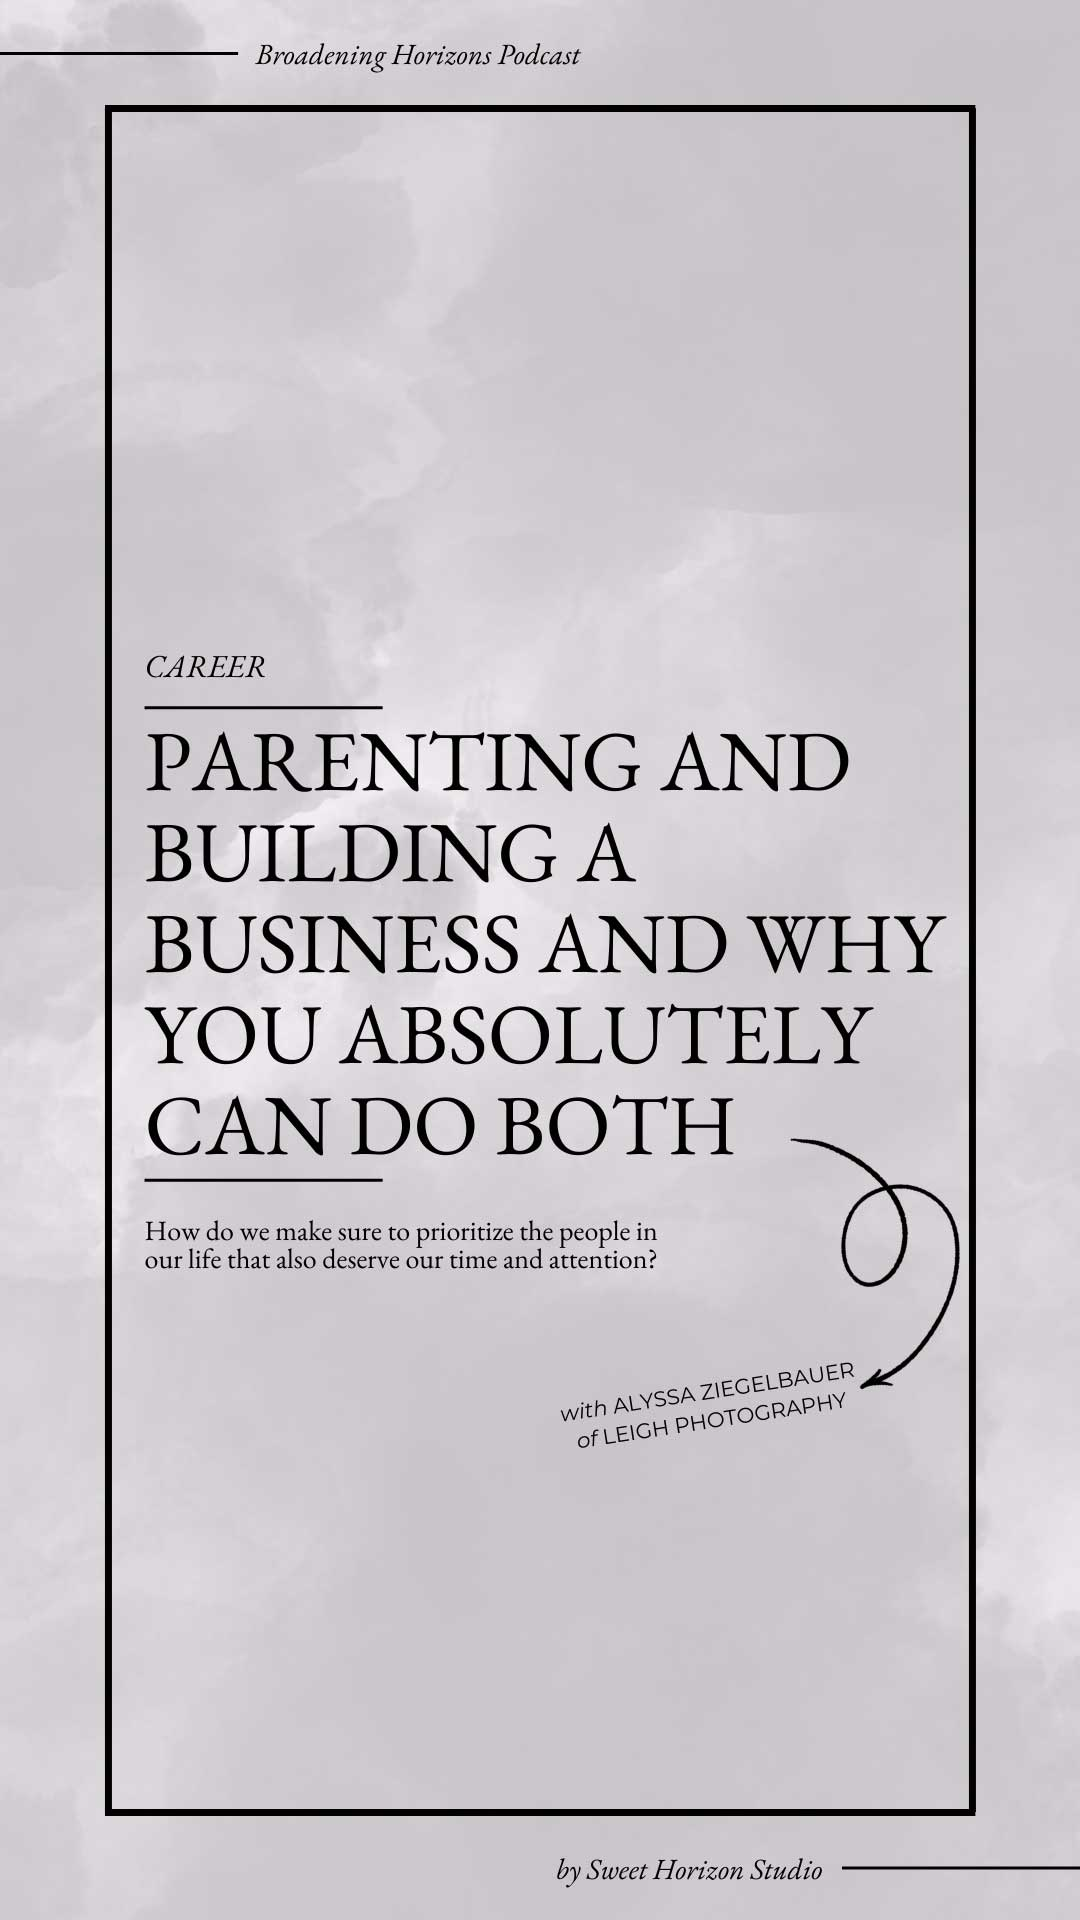 Parenting and Building a Business and Why You Absolutely Can Do Both with Alyssa Ziegelbauer of Leigh Photography from www.sweethorizonblog.com